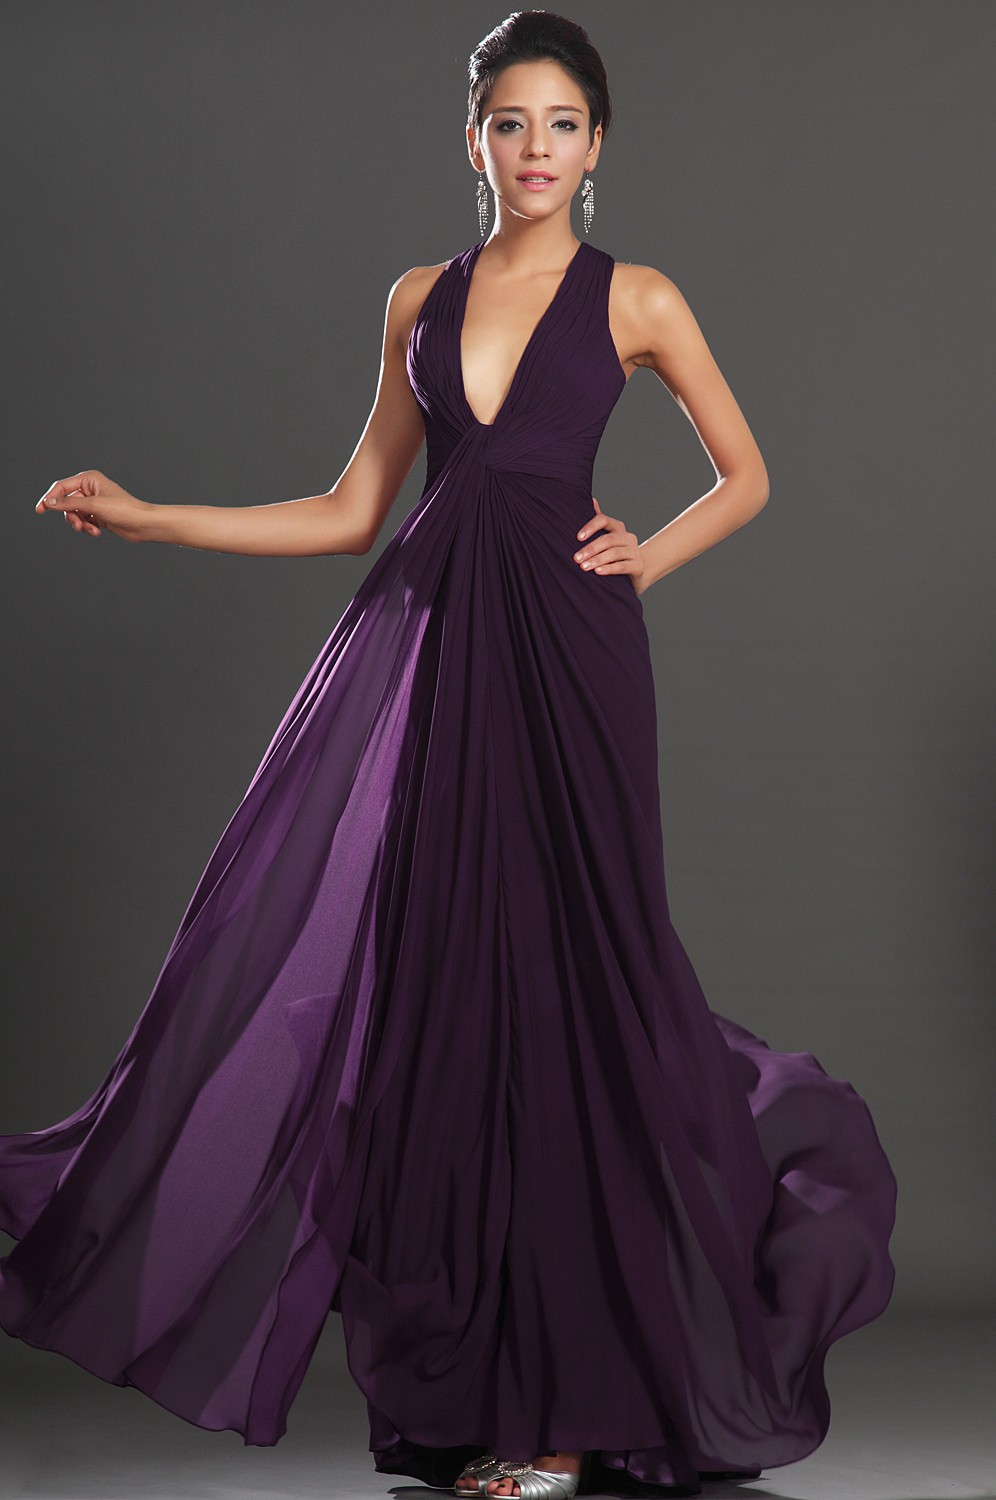 766bff11dcb 2017 Sexy Deep V Neck Long Chiffon Bridesmaid Dresses Dark Purple Backless  A Line Flowy Wedding Party Dress Long Prom Dresses-in Prom Dresses from  Weddings ...